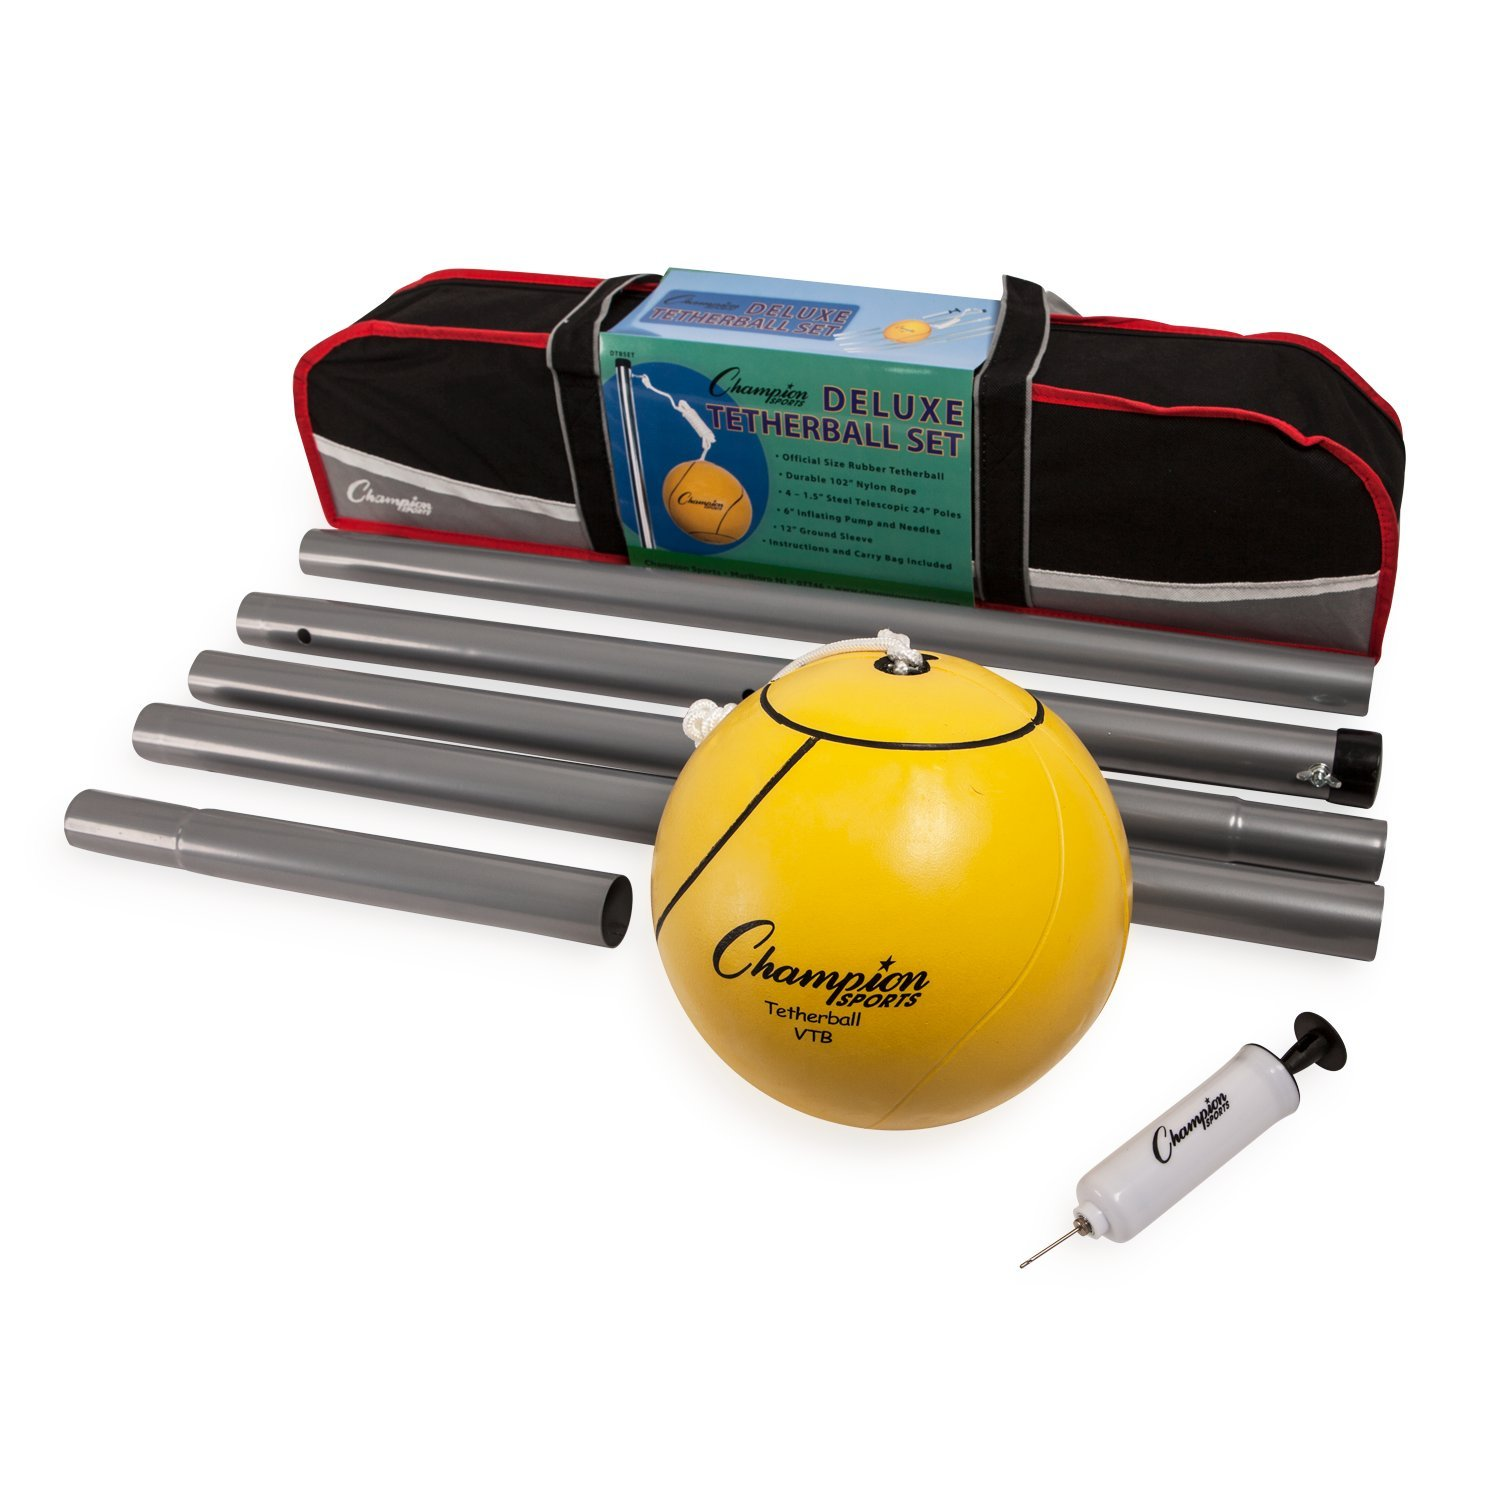 Champion Sports Portable Tetherball Set: classique de courge Lawn Beach and Pool Party Game comprend Soft Ball Nylon Rope & Durable Telescopic Pole avec pompe à air gratuit B0029VY1GC